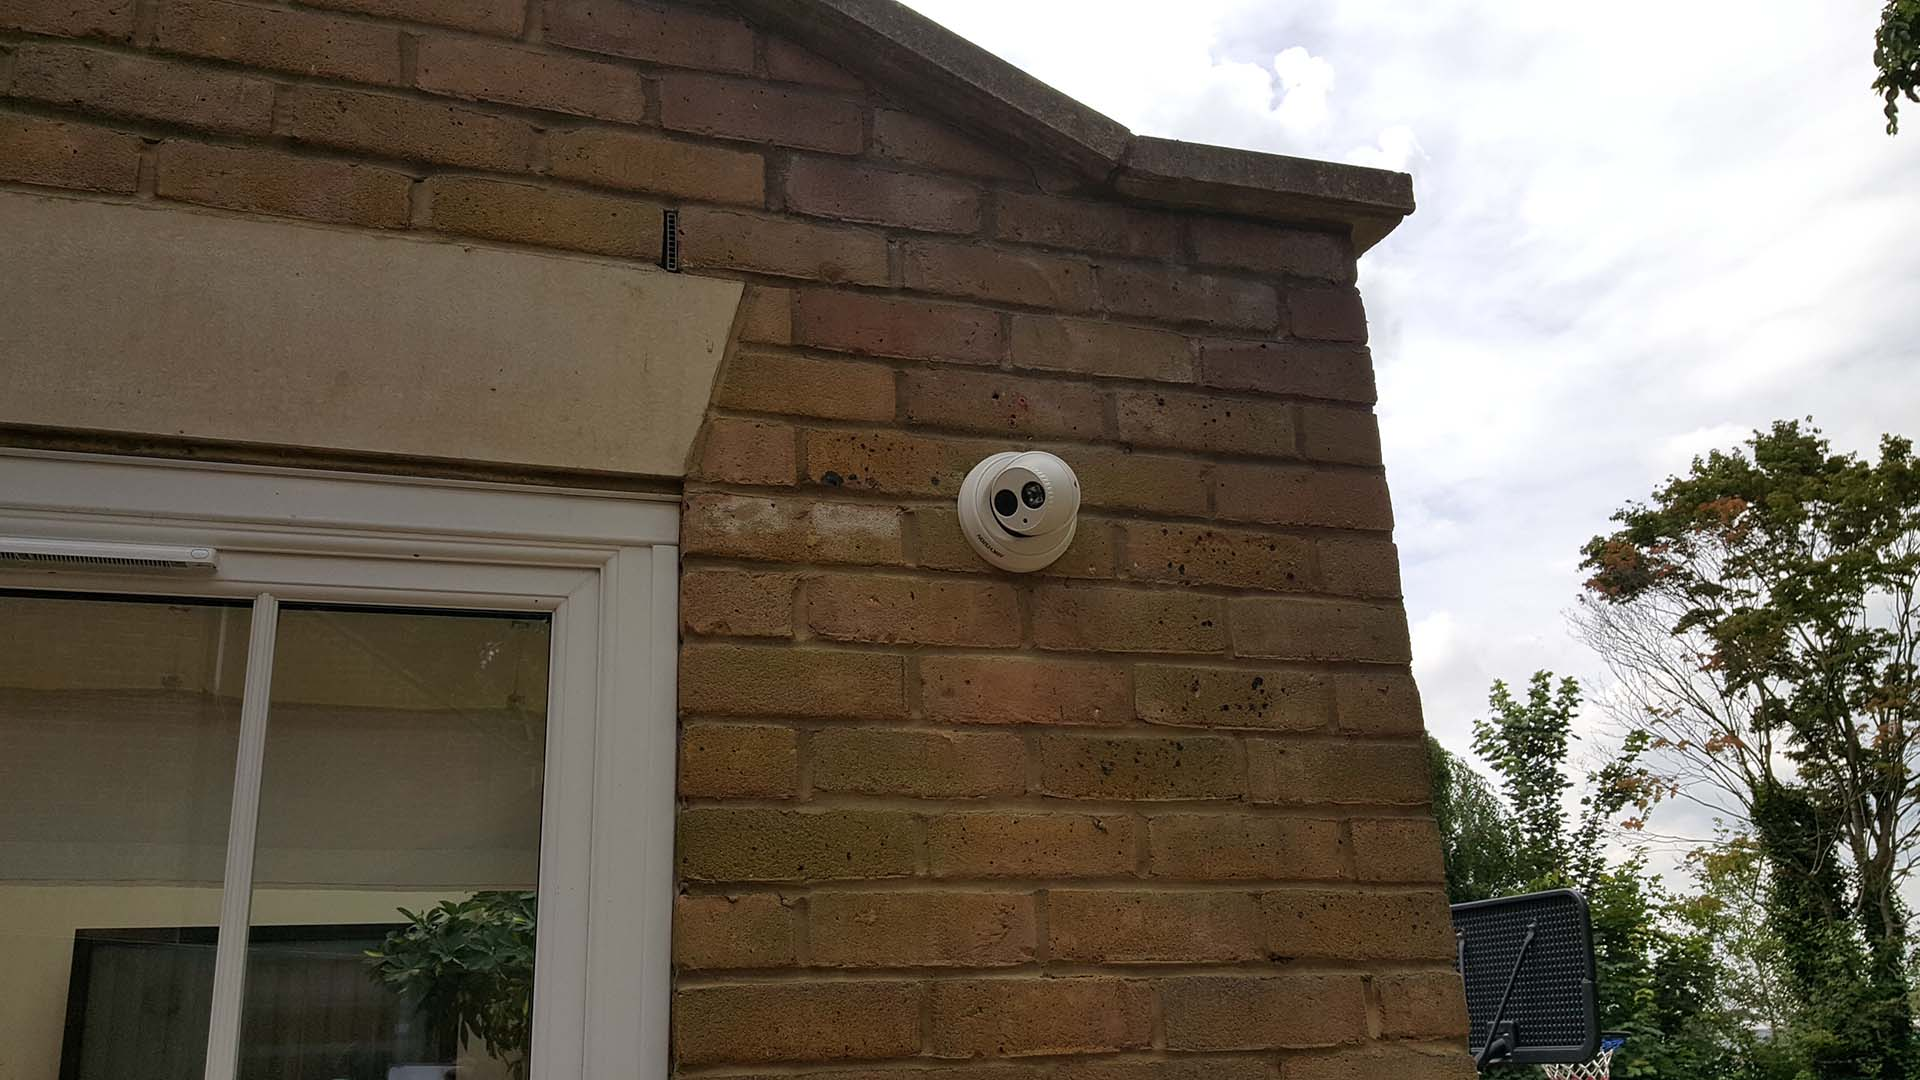 CCTV Installation in Billericay